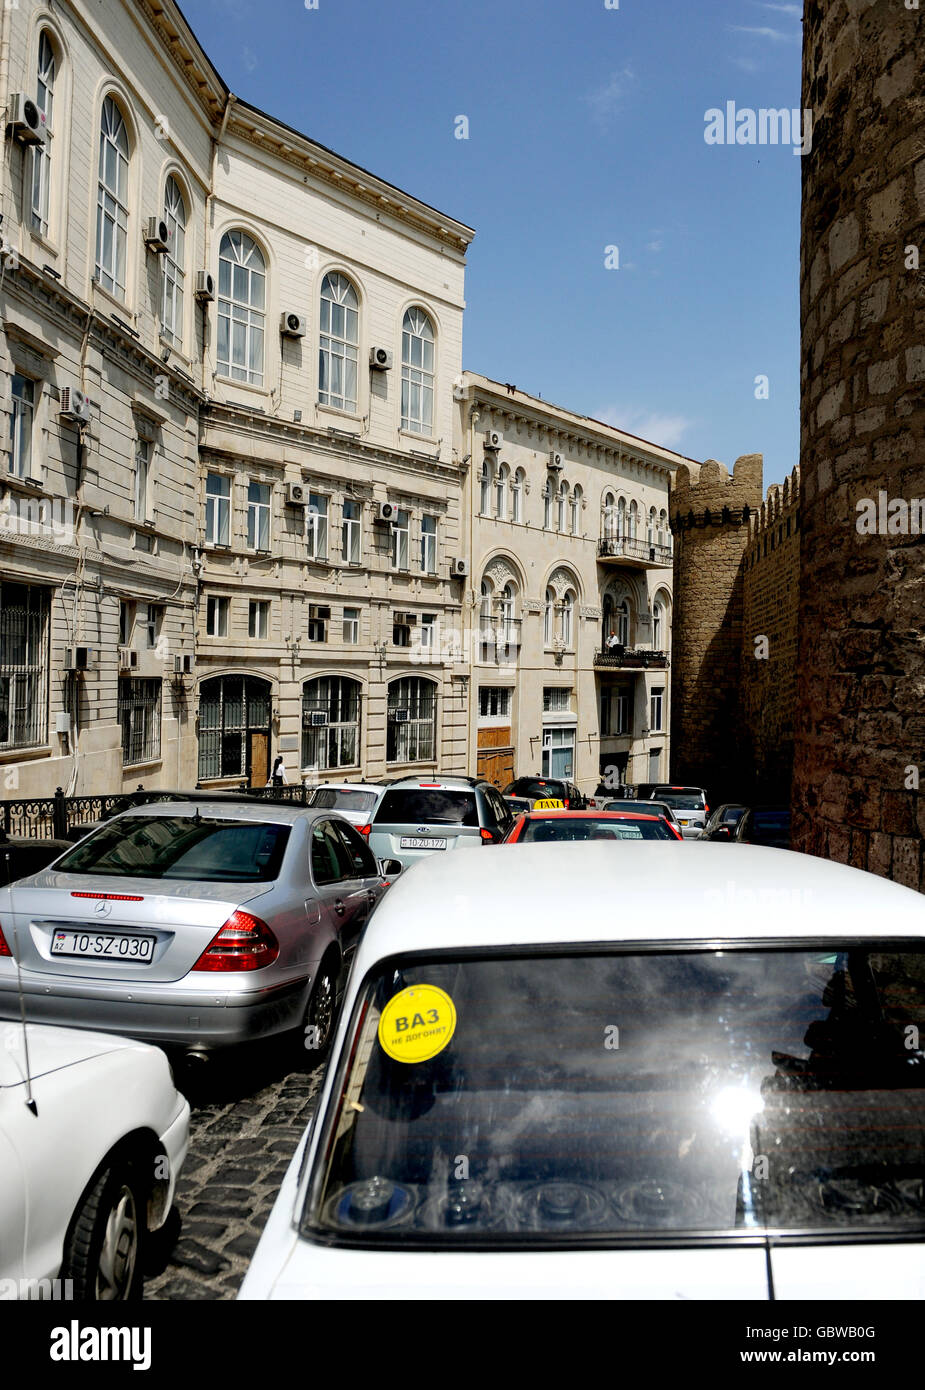 Travel Stock - Baku - Azerbaijan - Stock Image